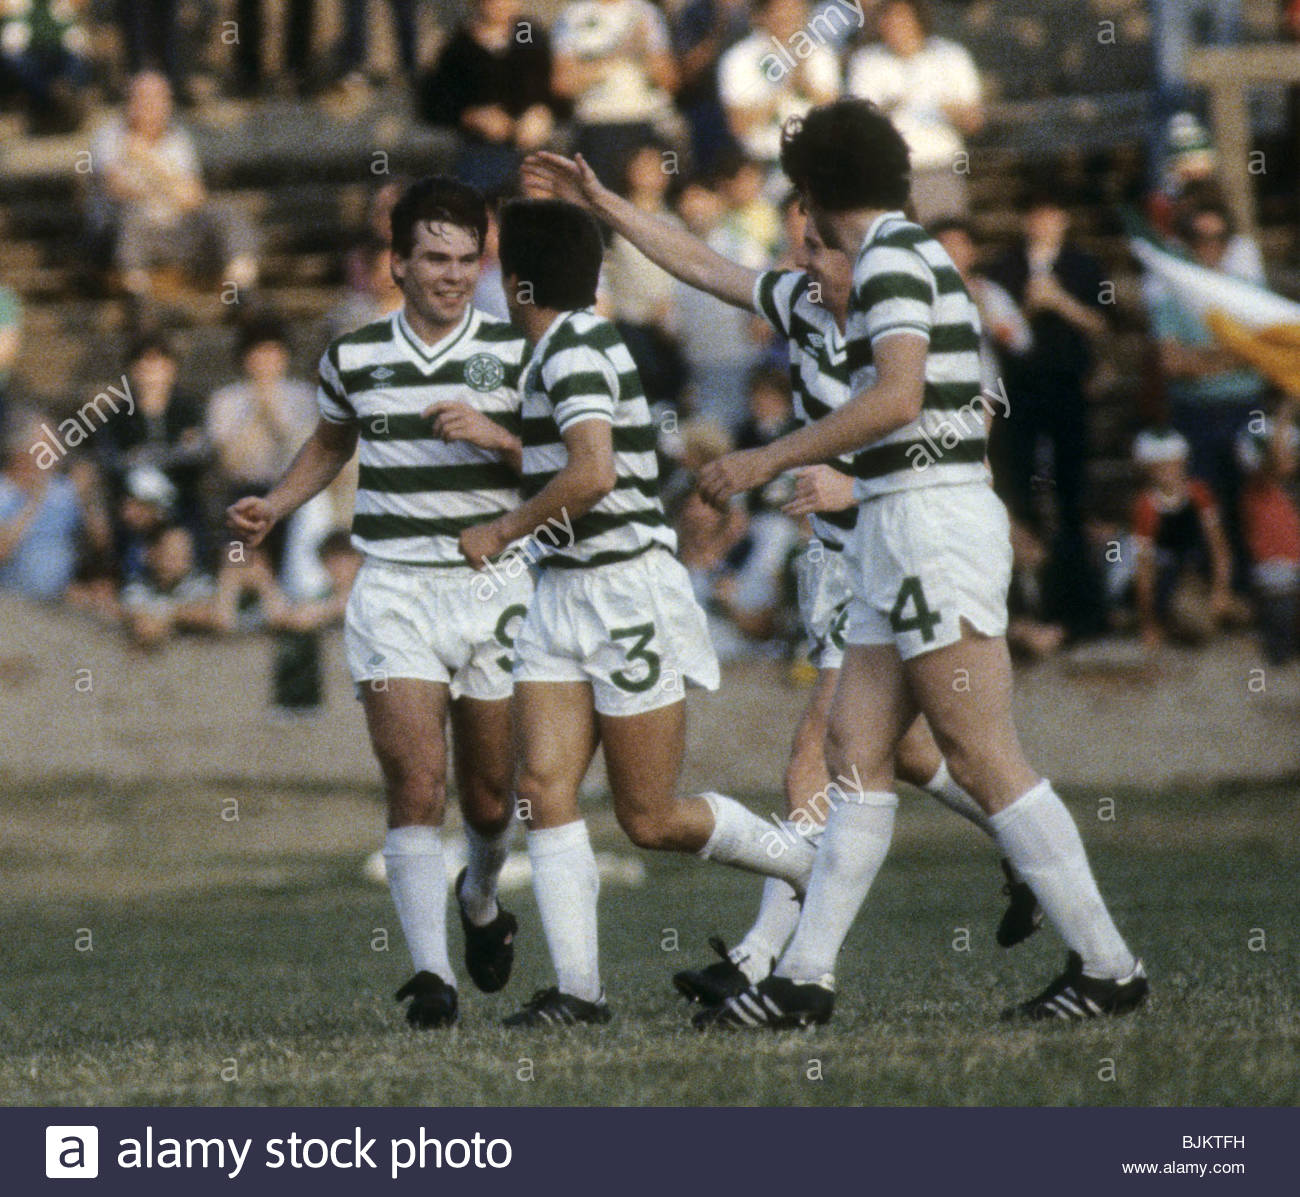 09/08/83 GLASGOW CUP PARTICK THISTLE v CELTIC (0-2) FIRHILL - GLASGOW Brian McClair (left) is hailed by his team - Stock Image